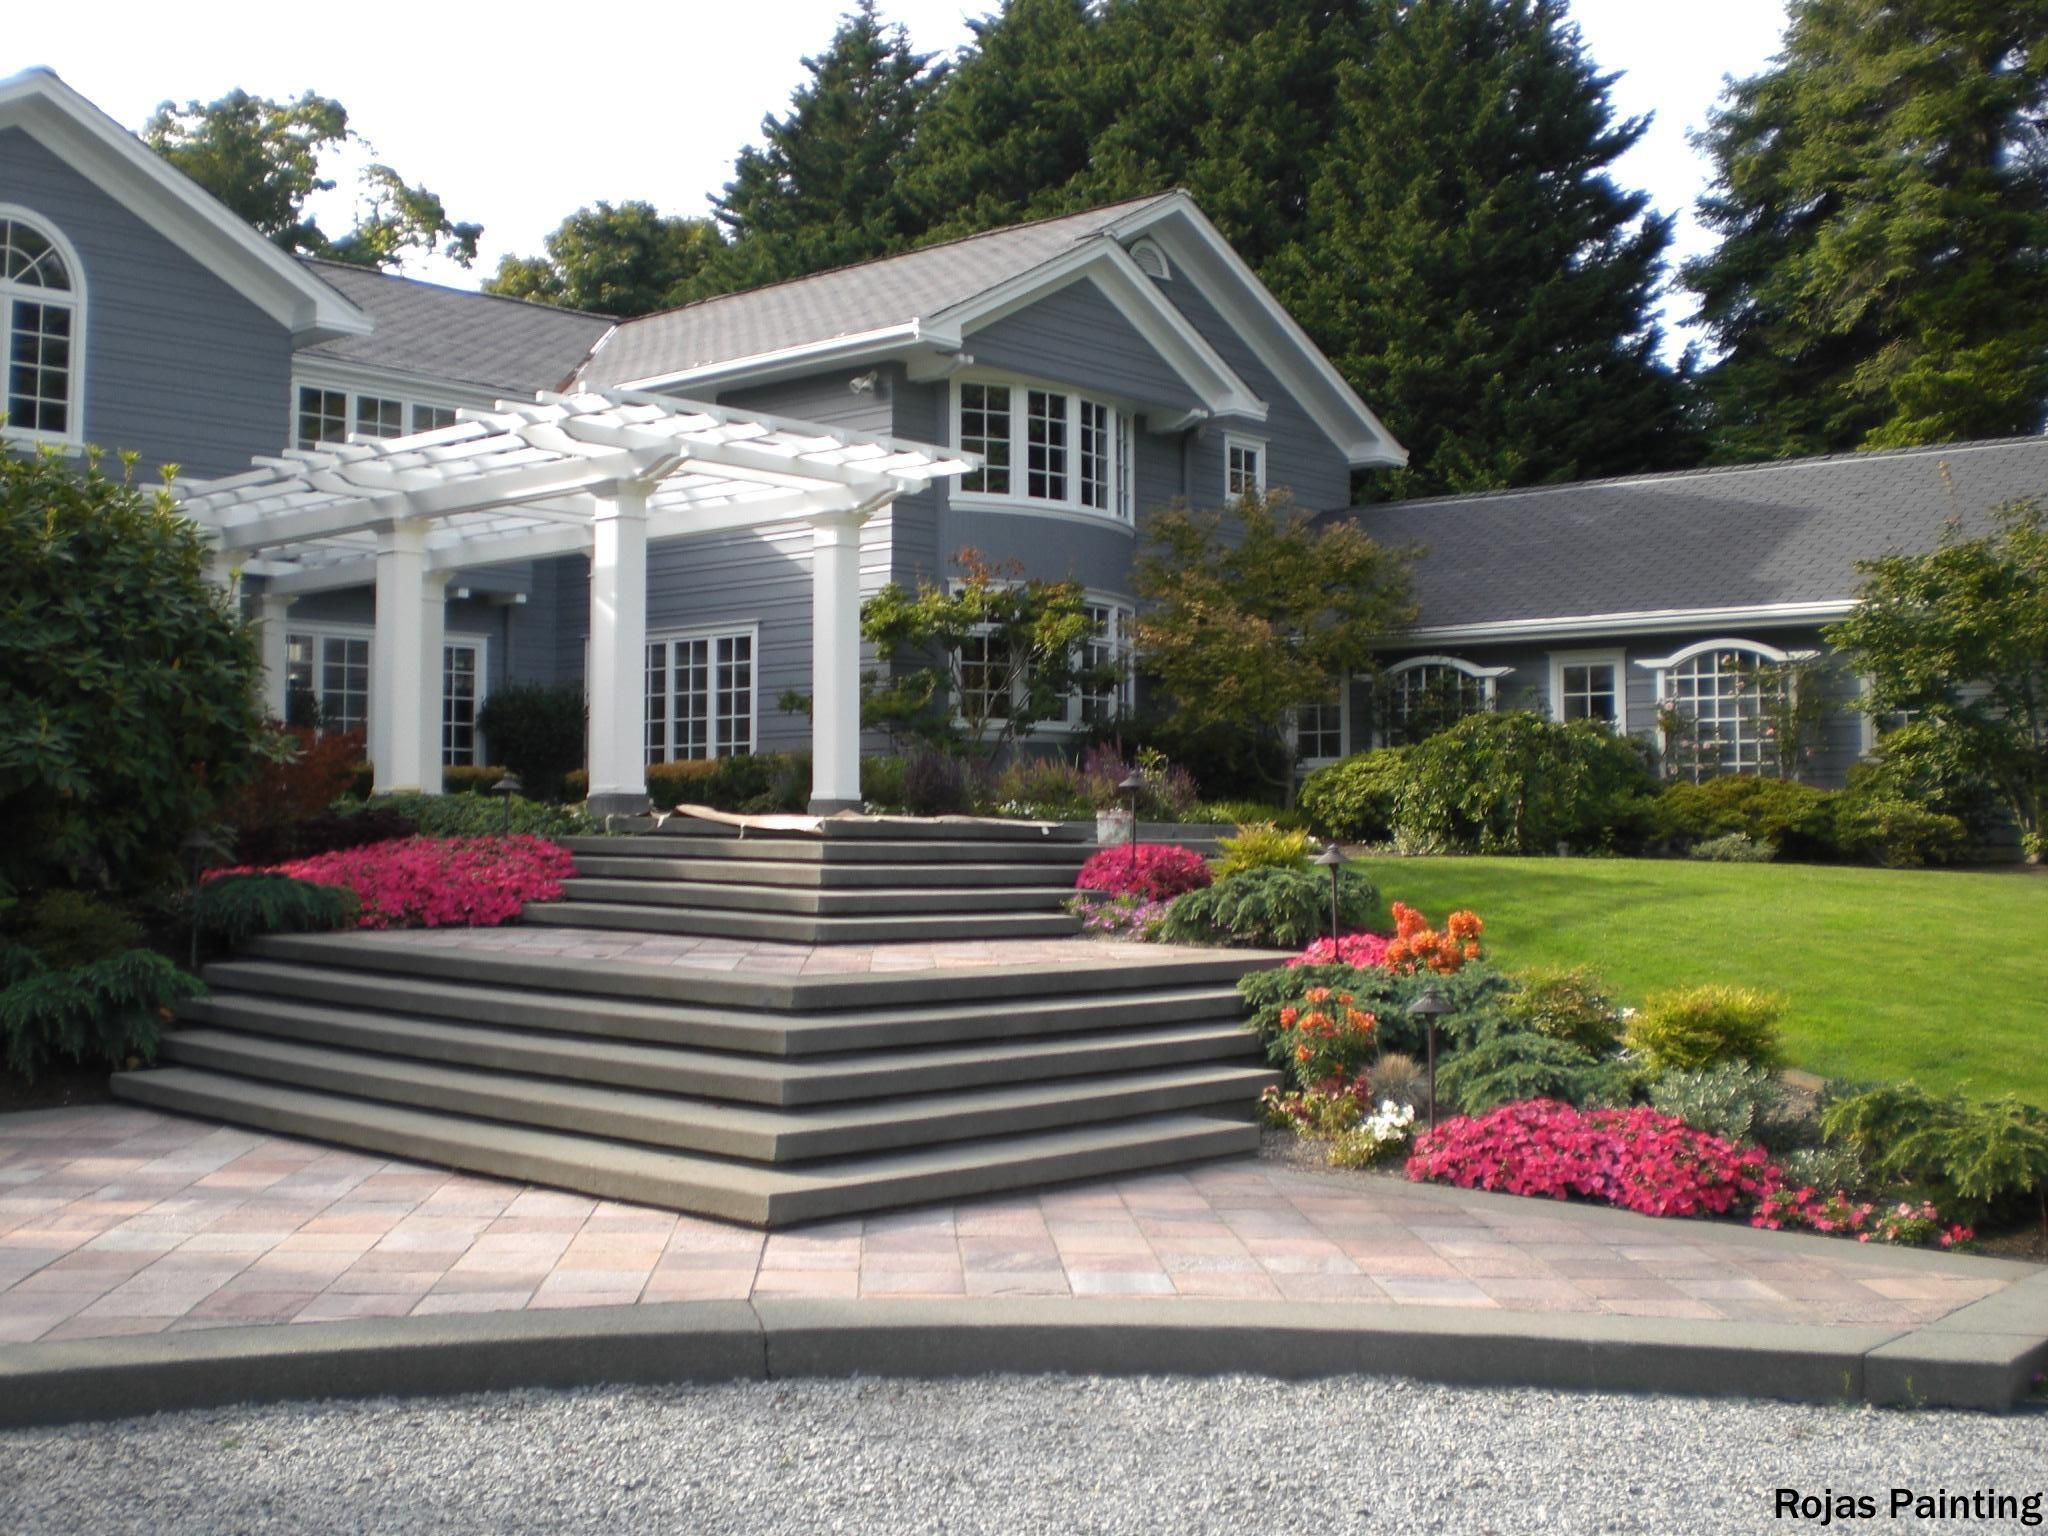 Traditional Home With Large Entry Stairs Multi Pane Windows White Columns Leading Up To The Door Tr Patio Pavers Design Traditional Patio Doors Patio Layout